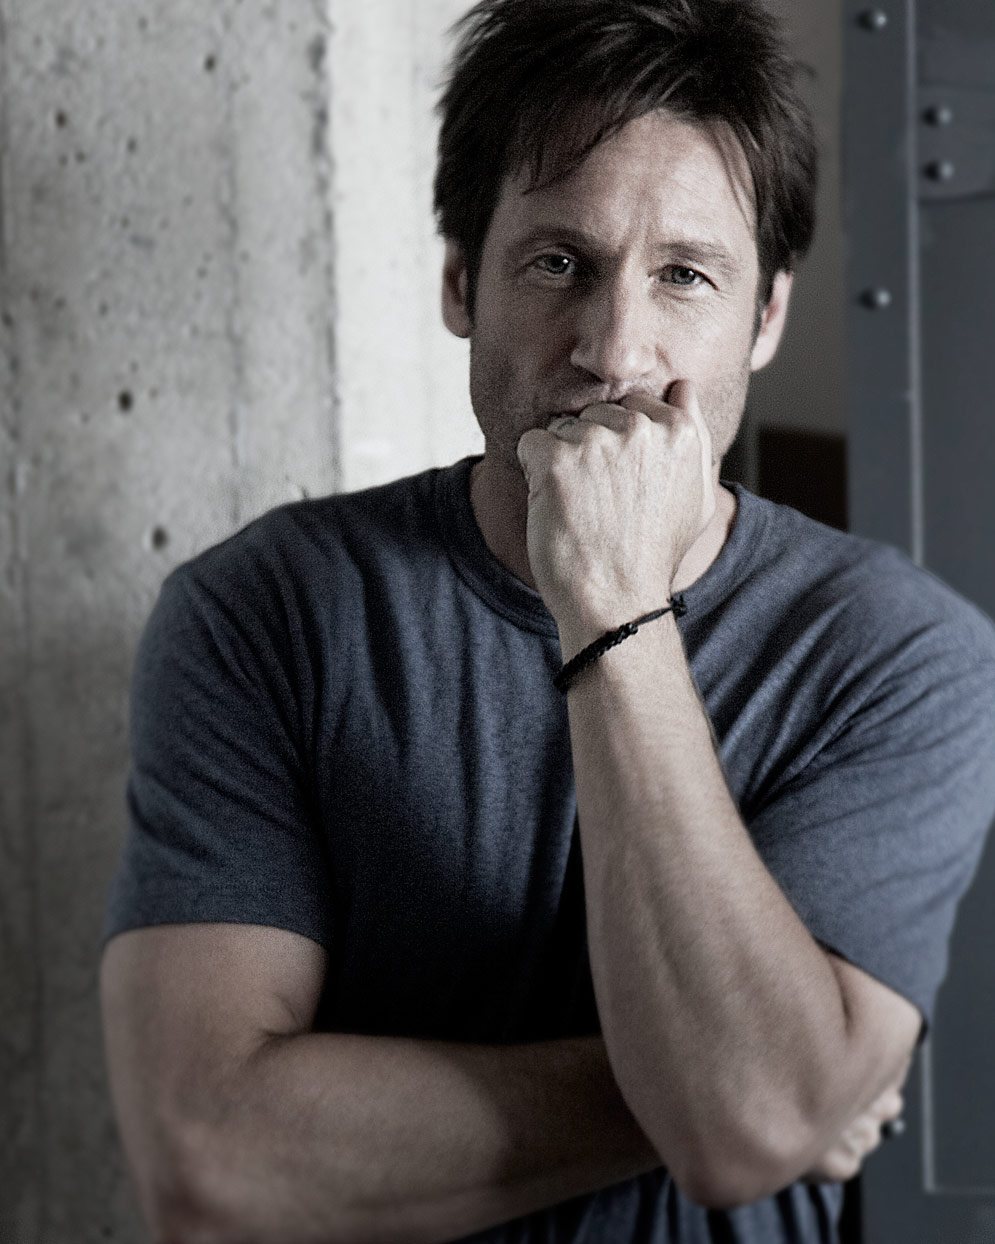 Mark DeLong - Celebrity Photographer - Actor wearing a blue t-shirt ponders.